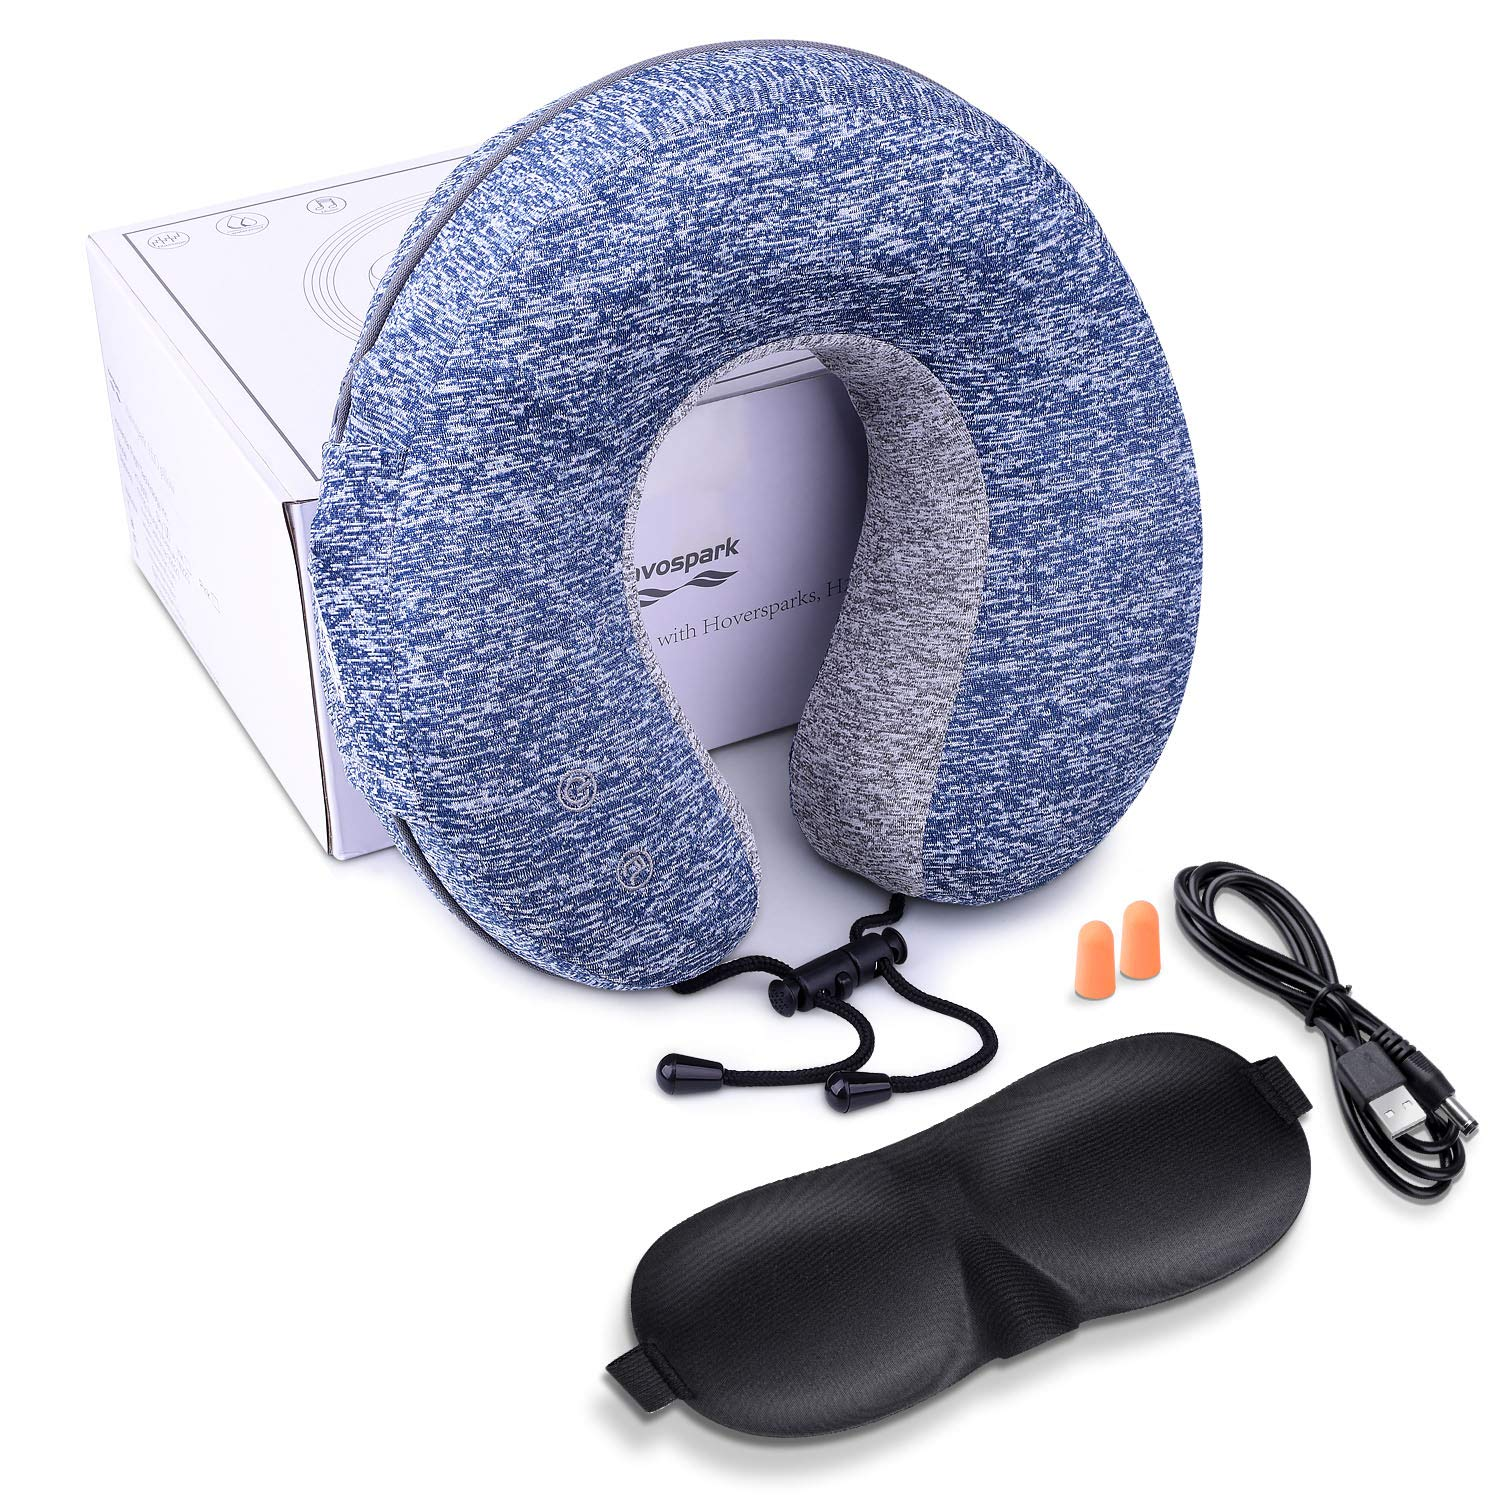 Havospark Massage Neck Pillow Travel Pillow with Massage, Waterproof, Music Playing Functions for Car, Airplane, Swimming, Camping H7